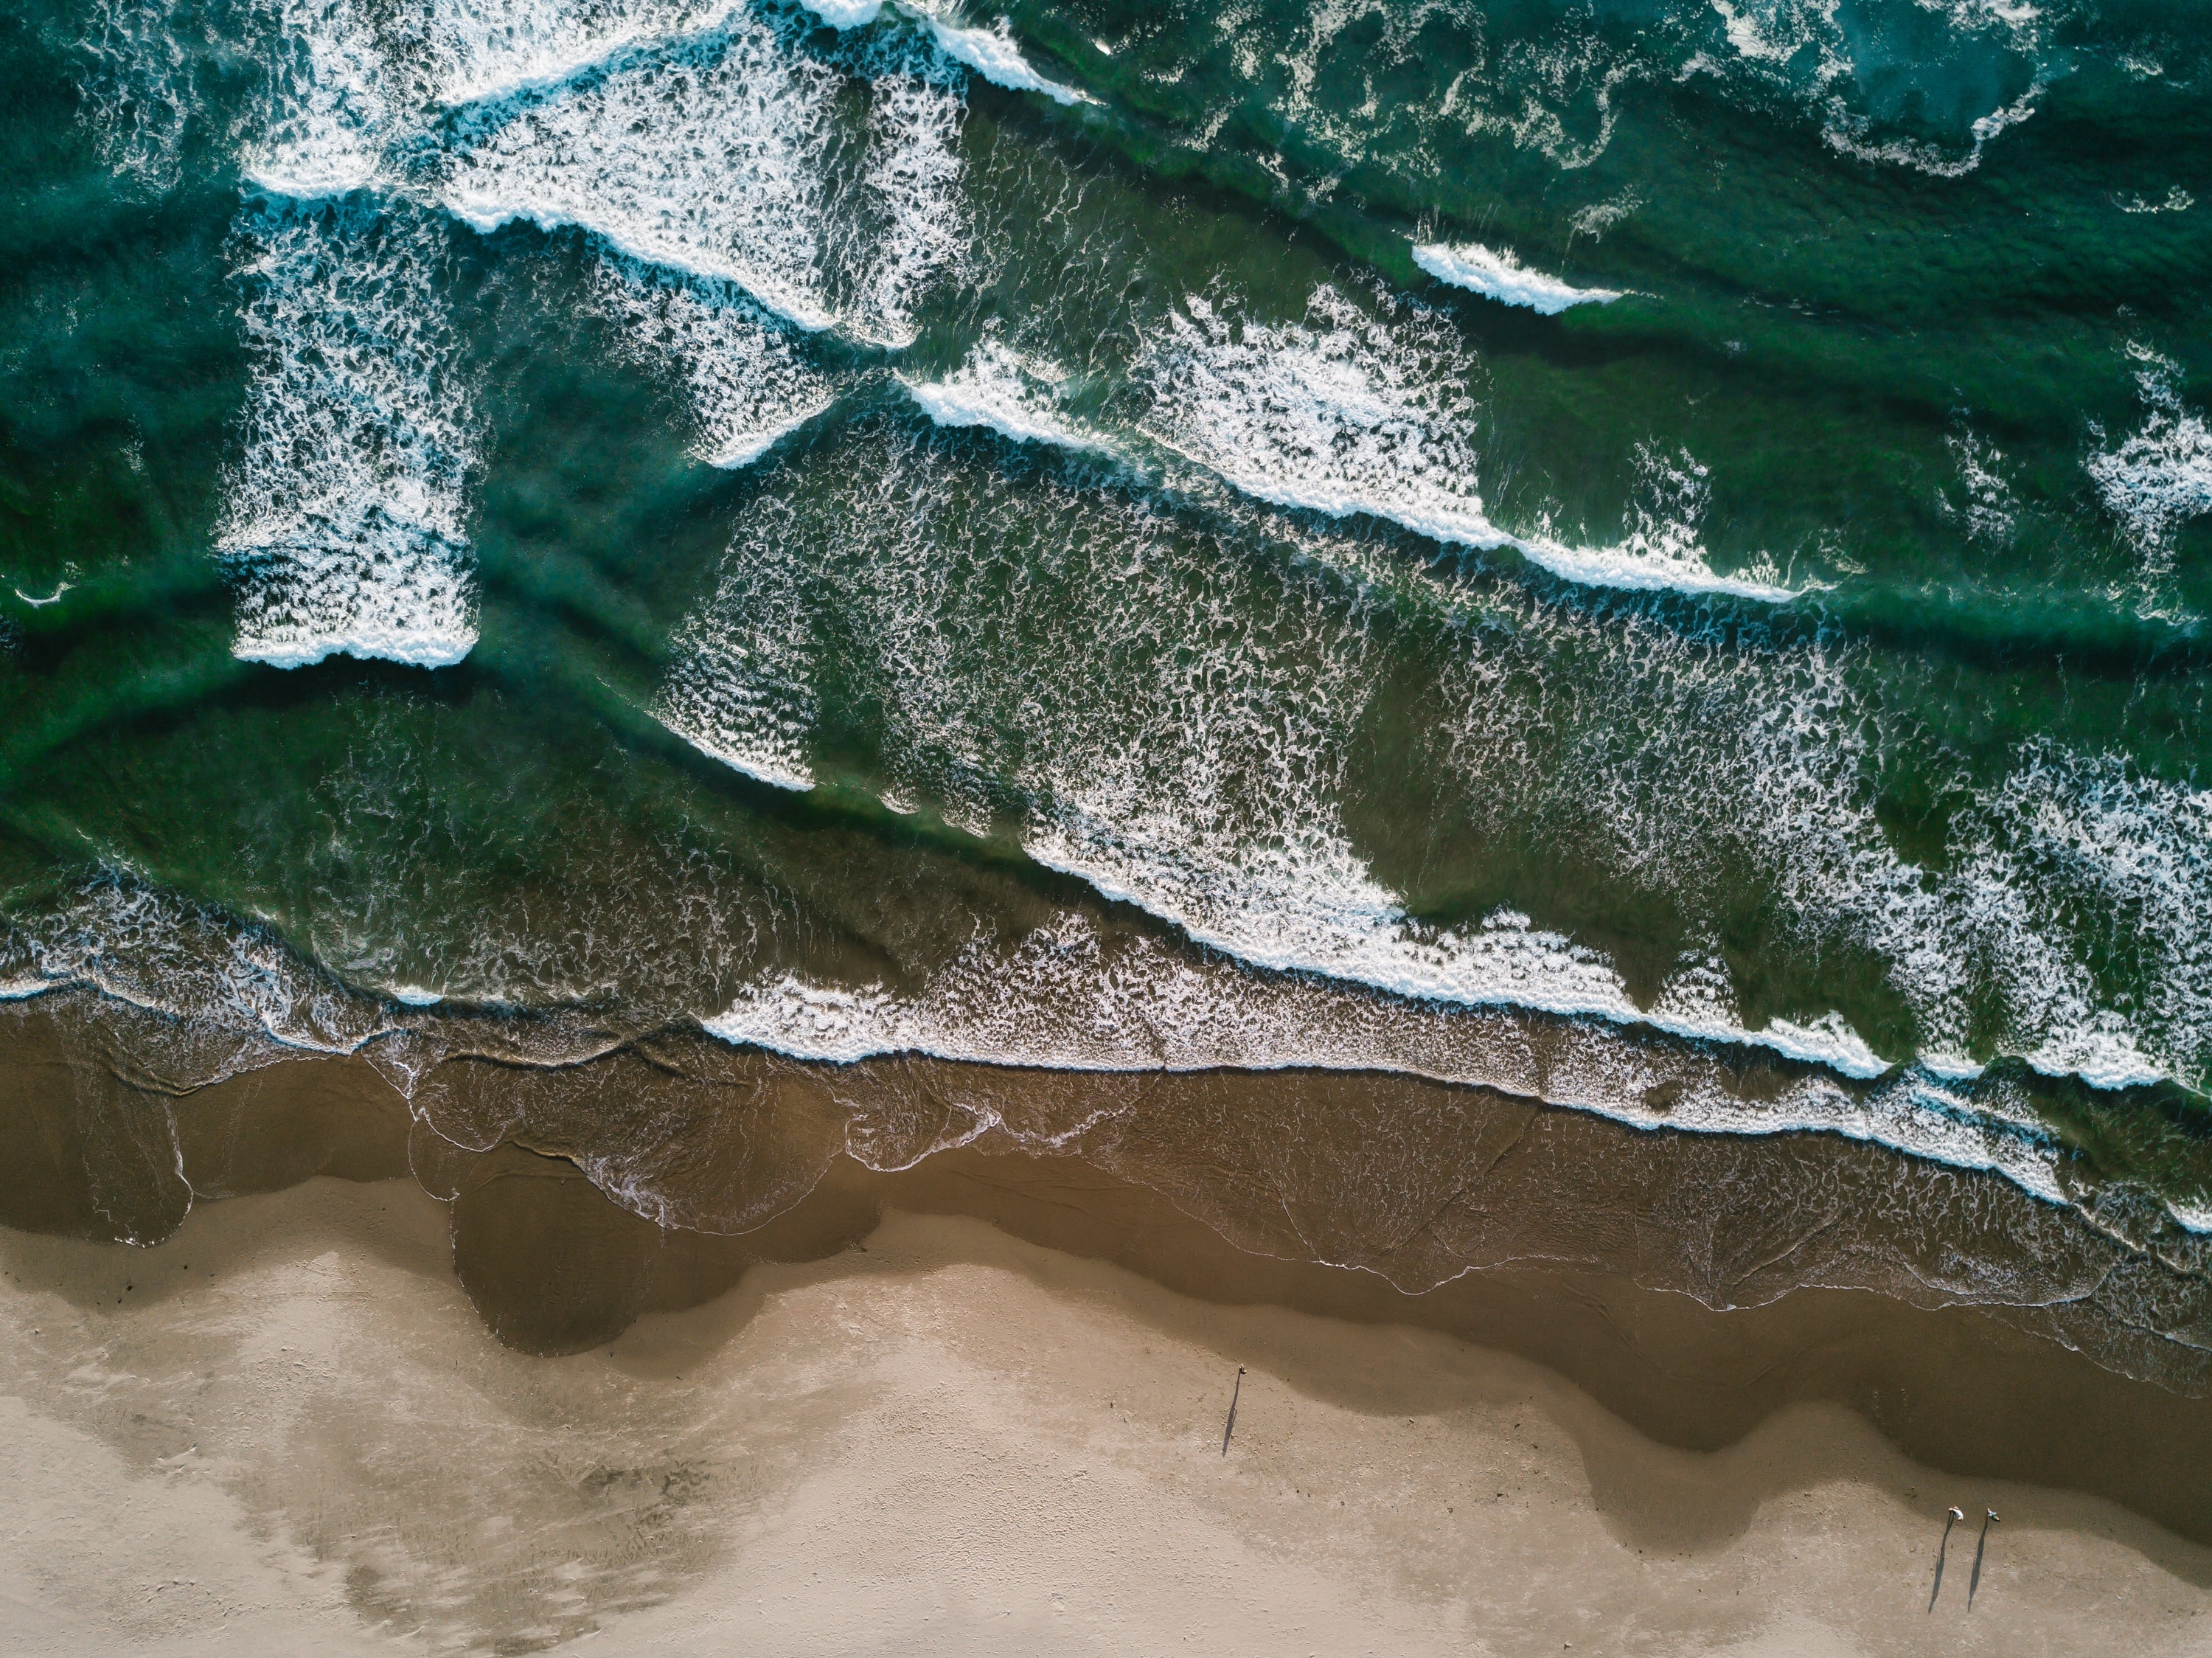 aerial photography of seawaves near seashore at daytime